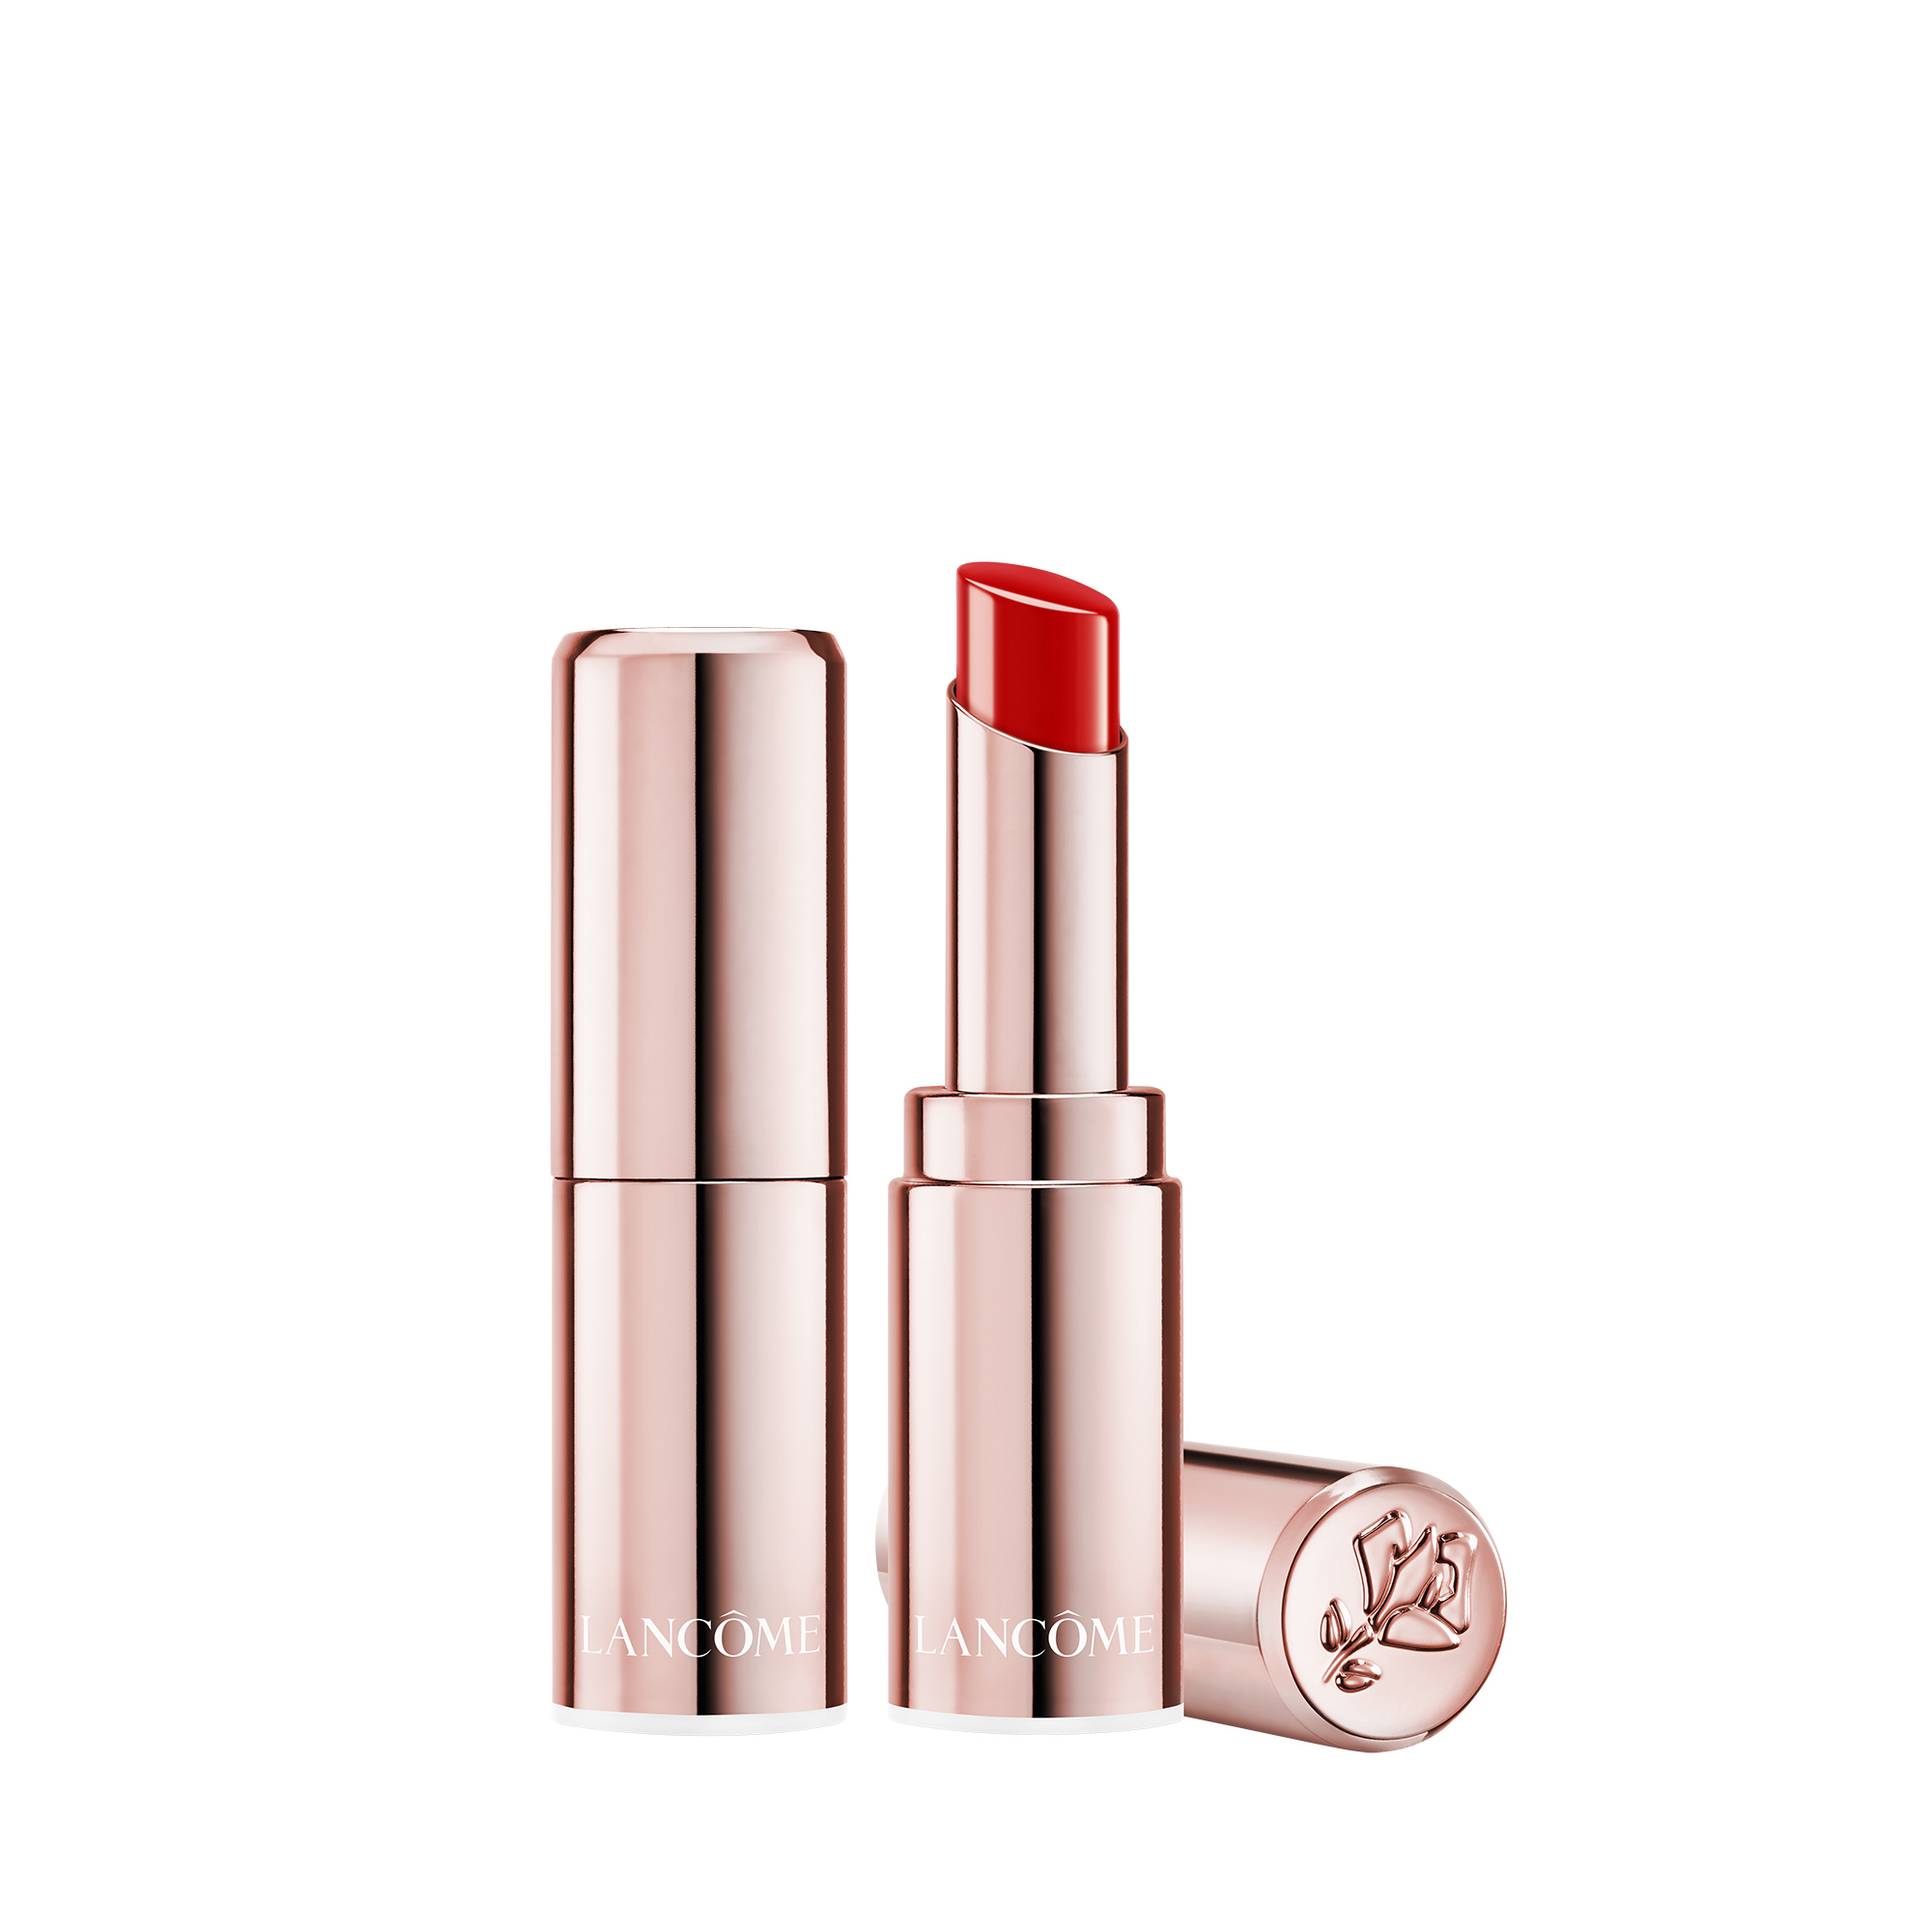 An image of Lancôme L'Absolu Mademoiselle Shine Lipstick - 157 MADEMOISELLE STANDS OUT